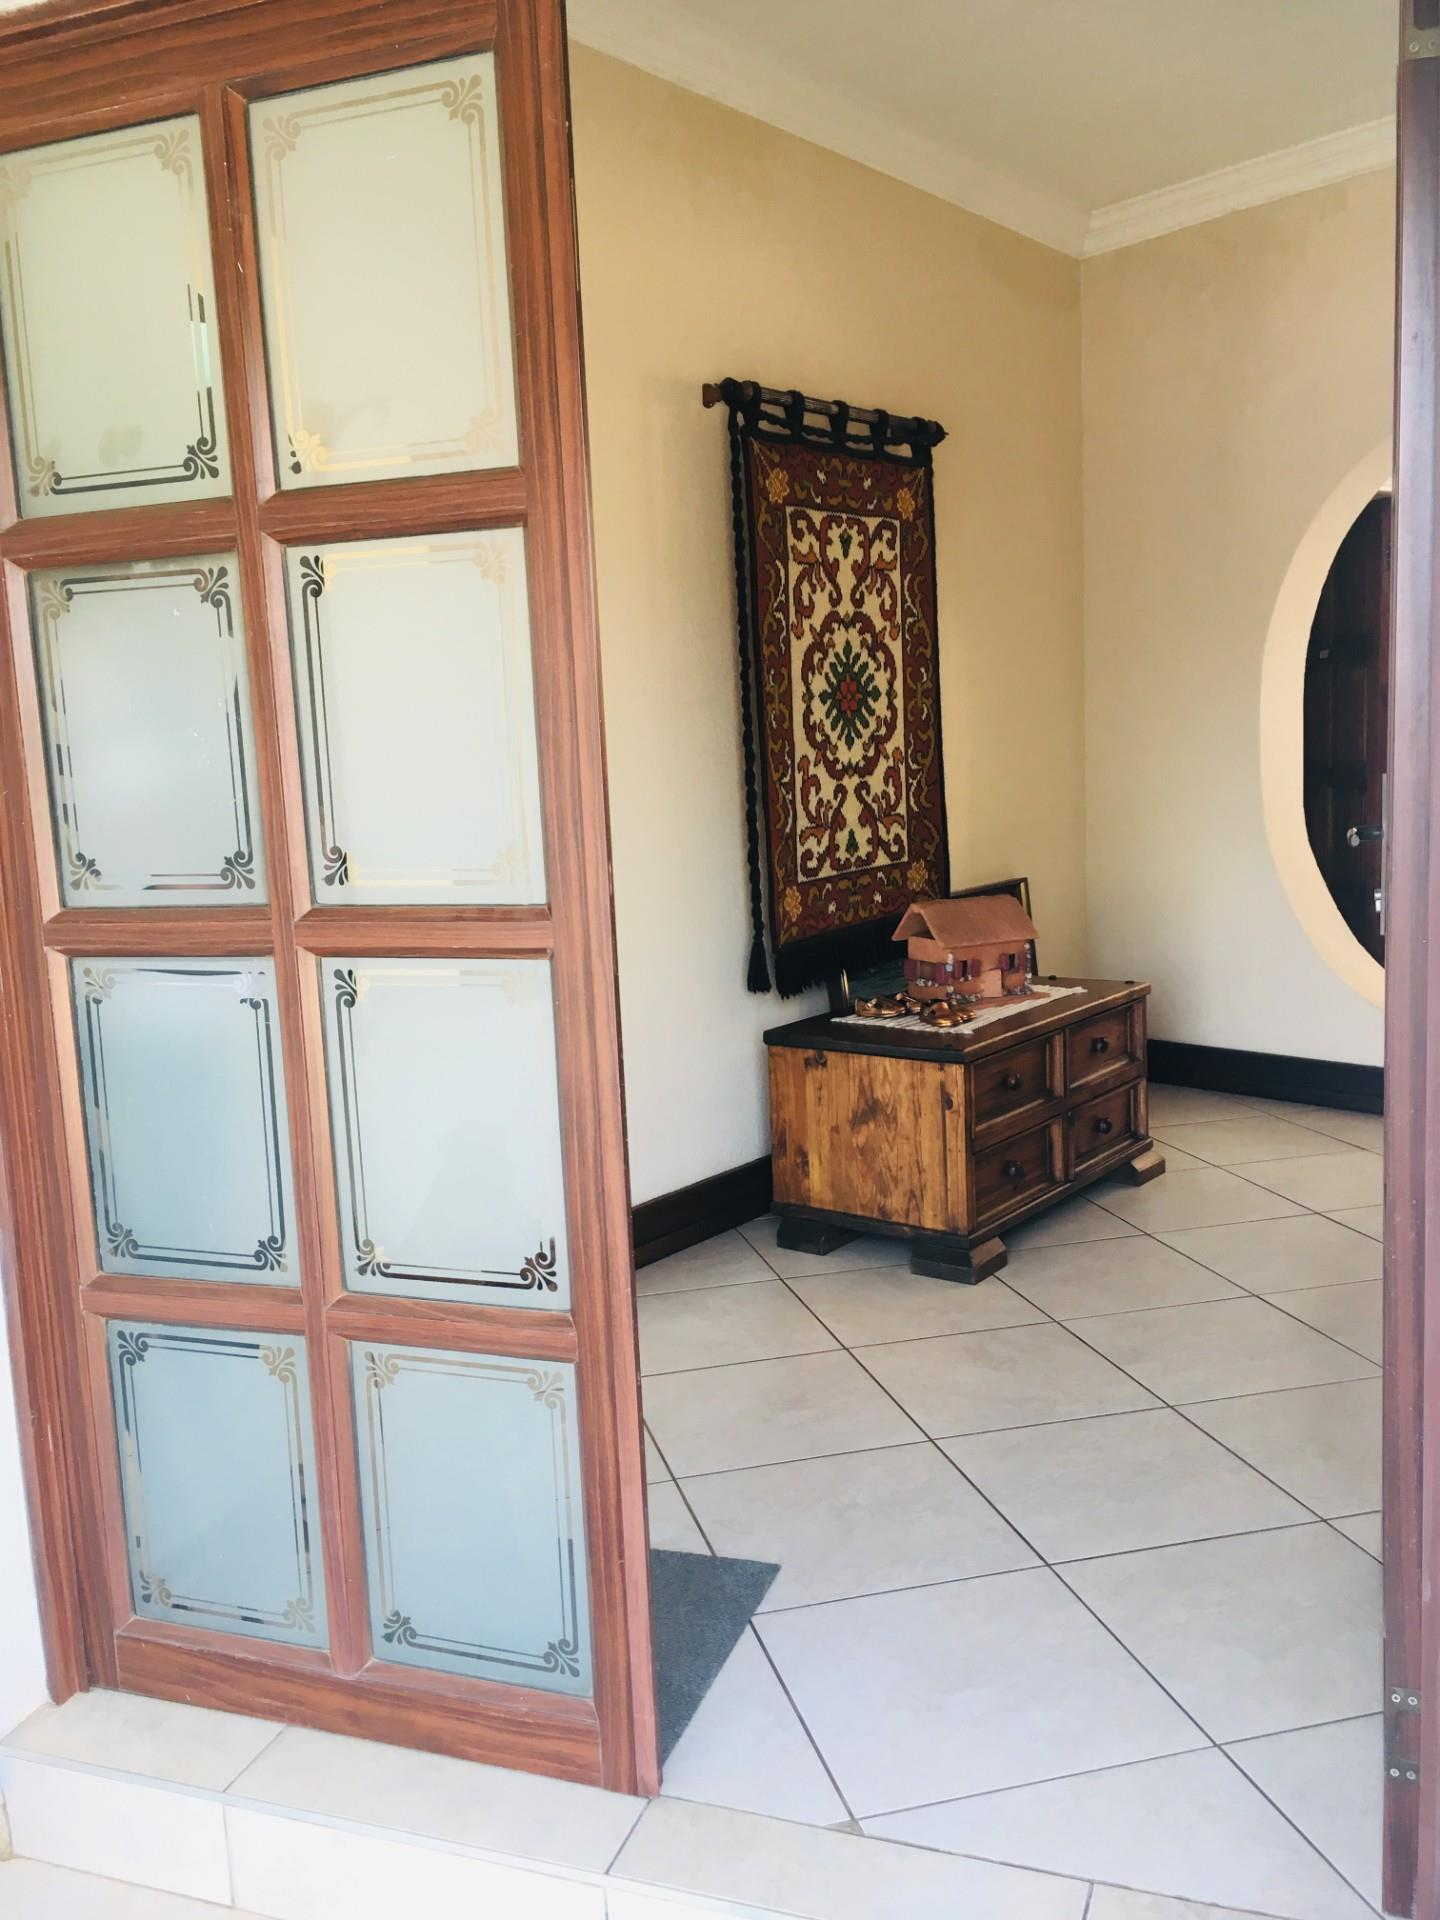 6 Bedroom House For Sale in Arcon Park